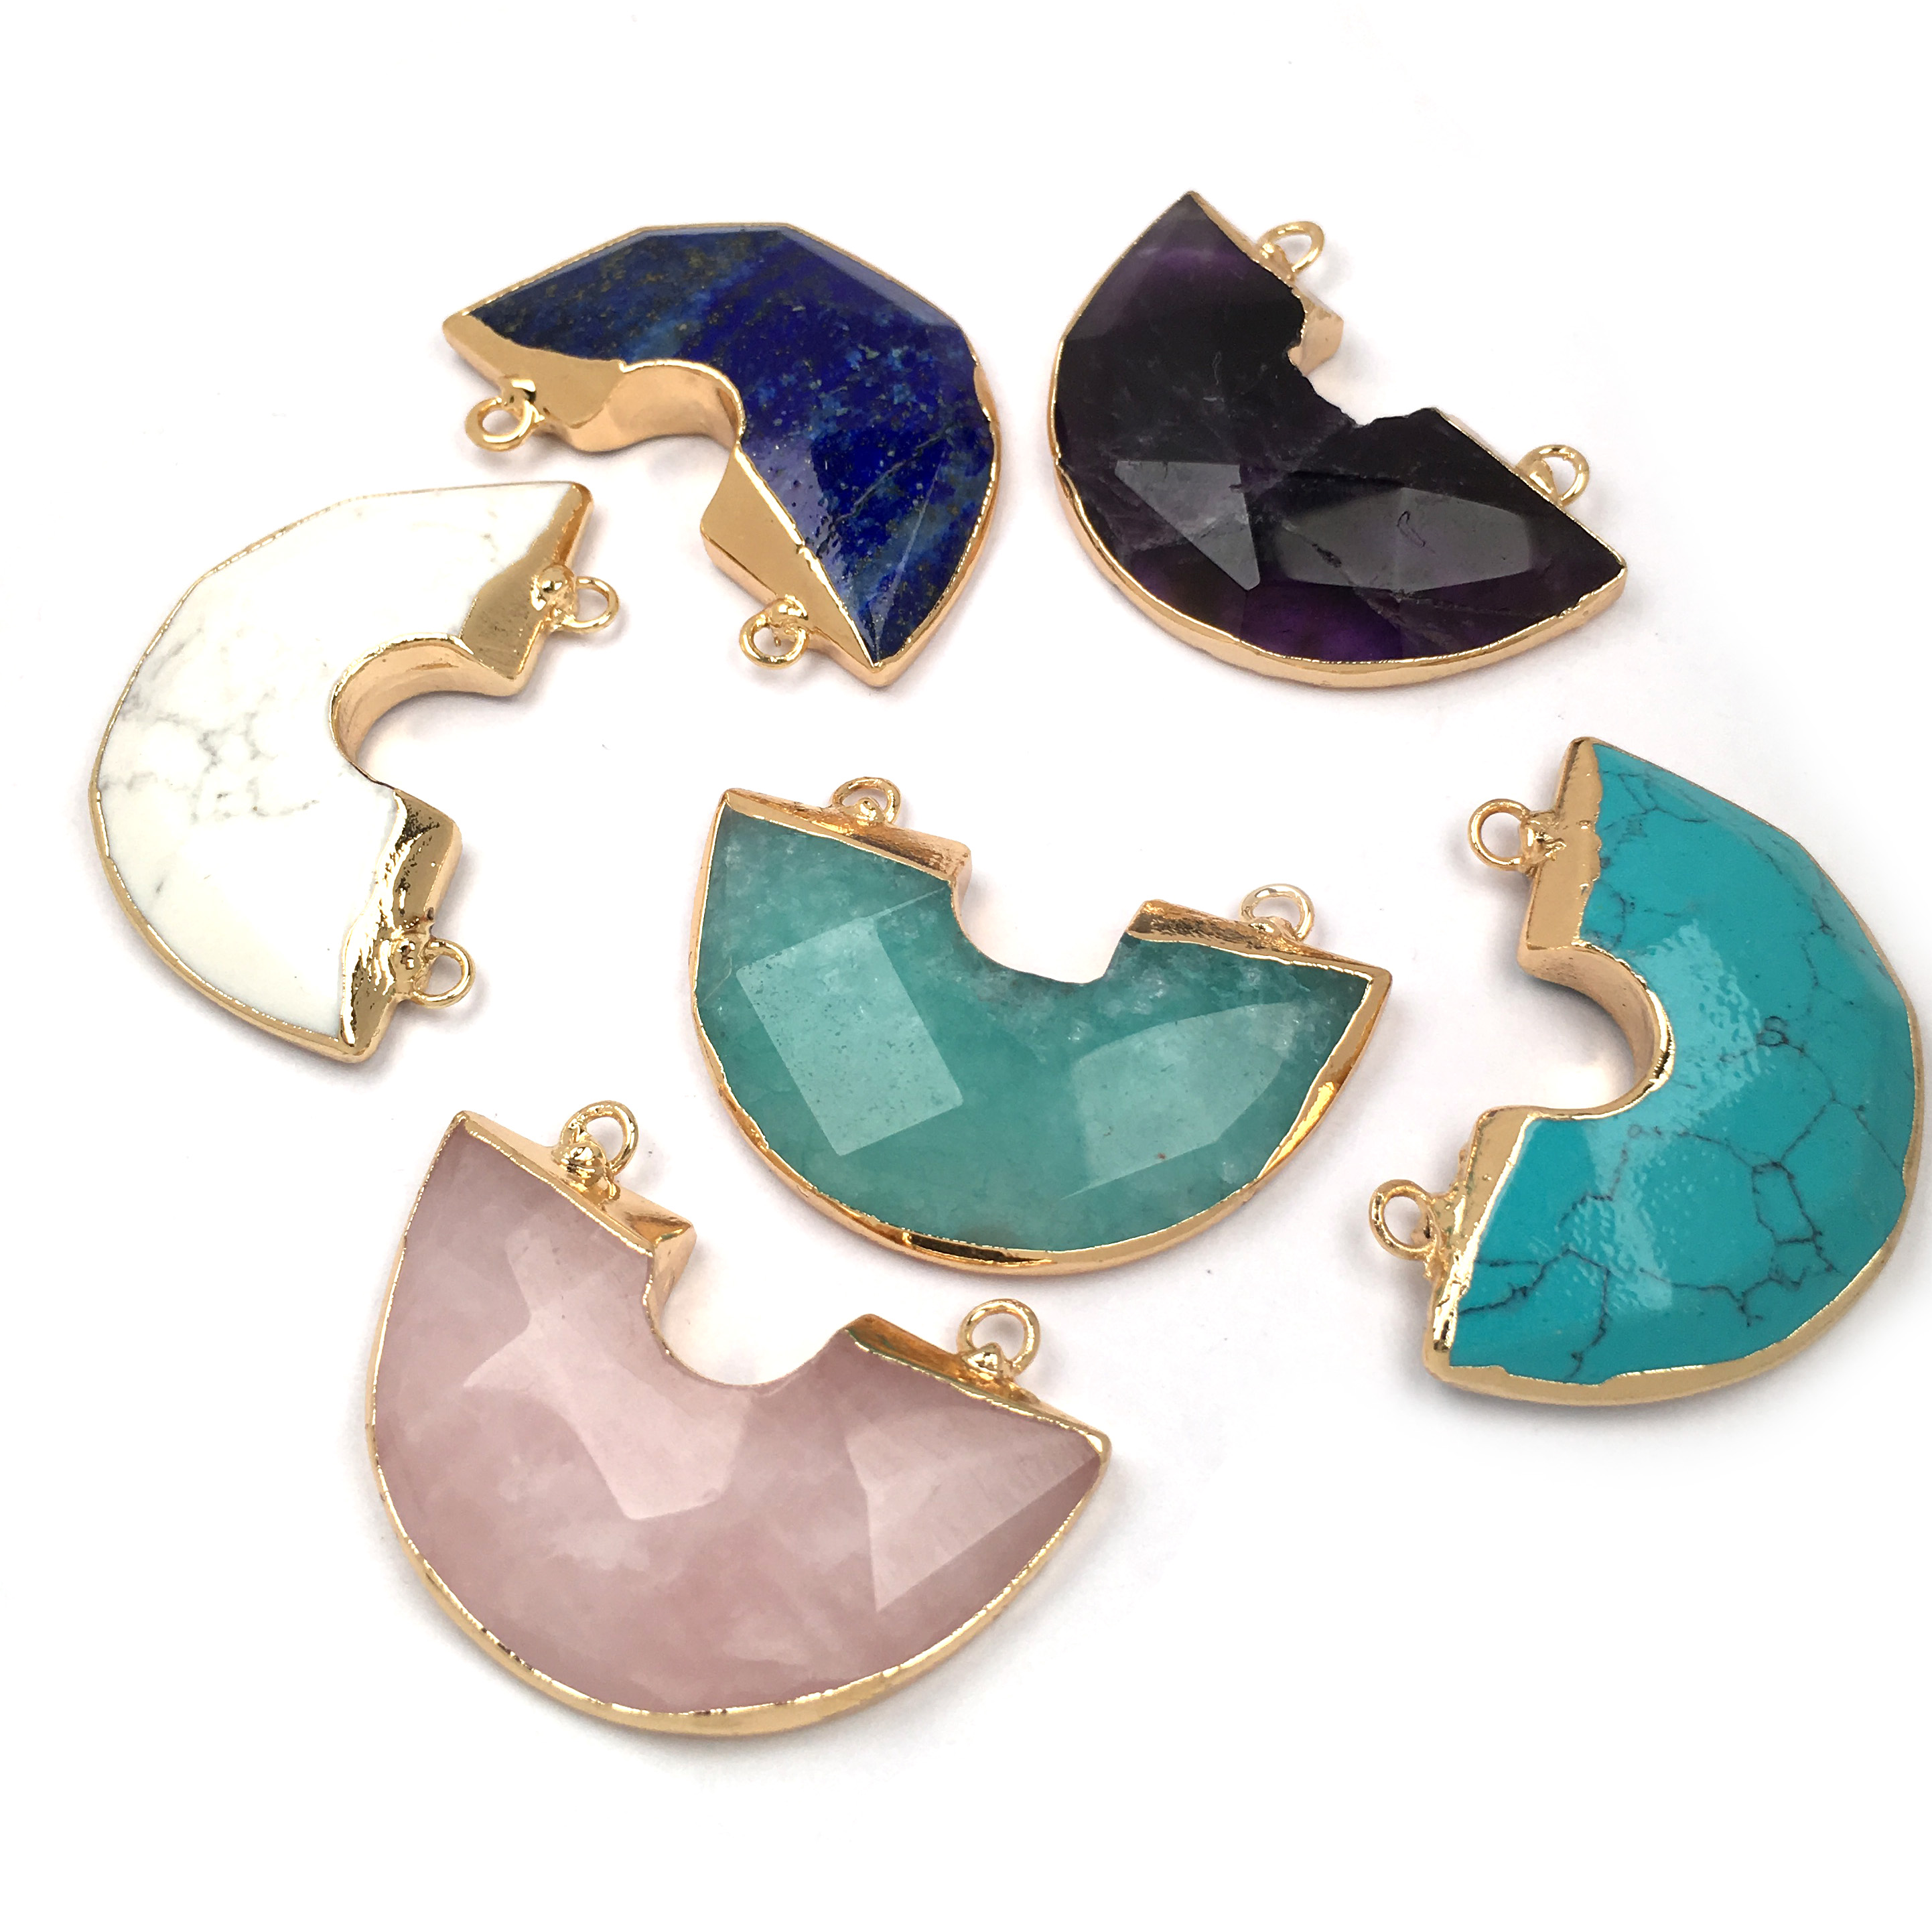 Natural Stone Semicircle Shape Pendants charm Faceted Pendants for Jewelry Making Supplies DIY necklace accessories size 30x40mm